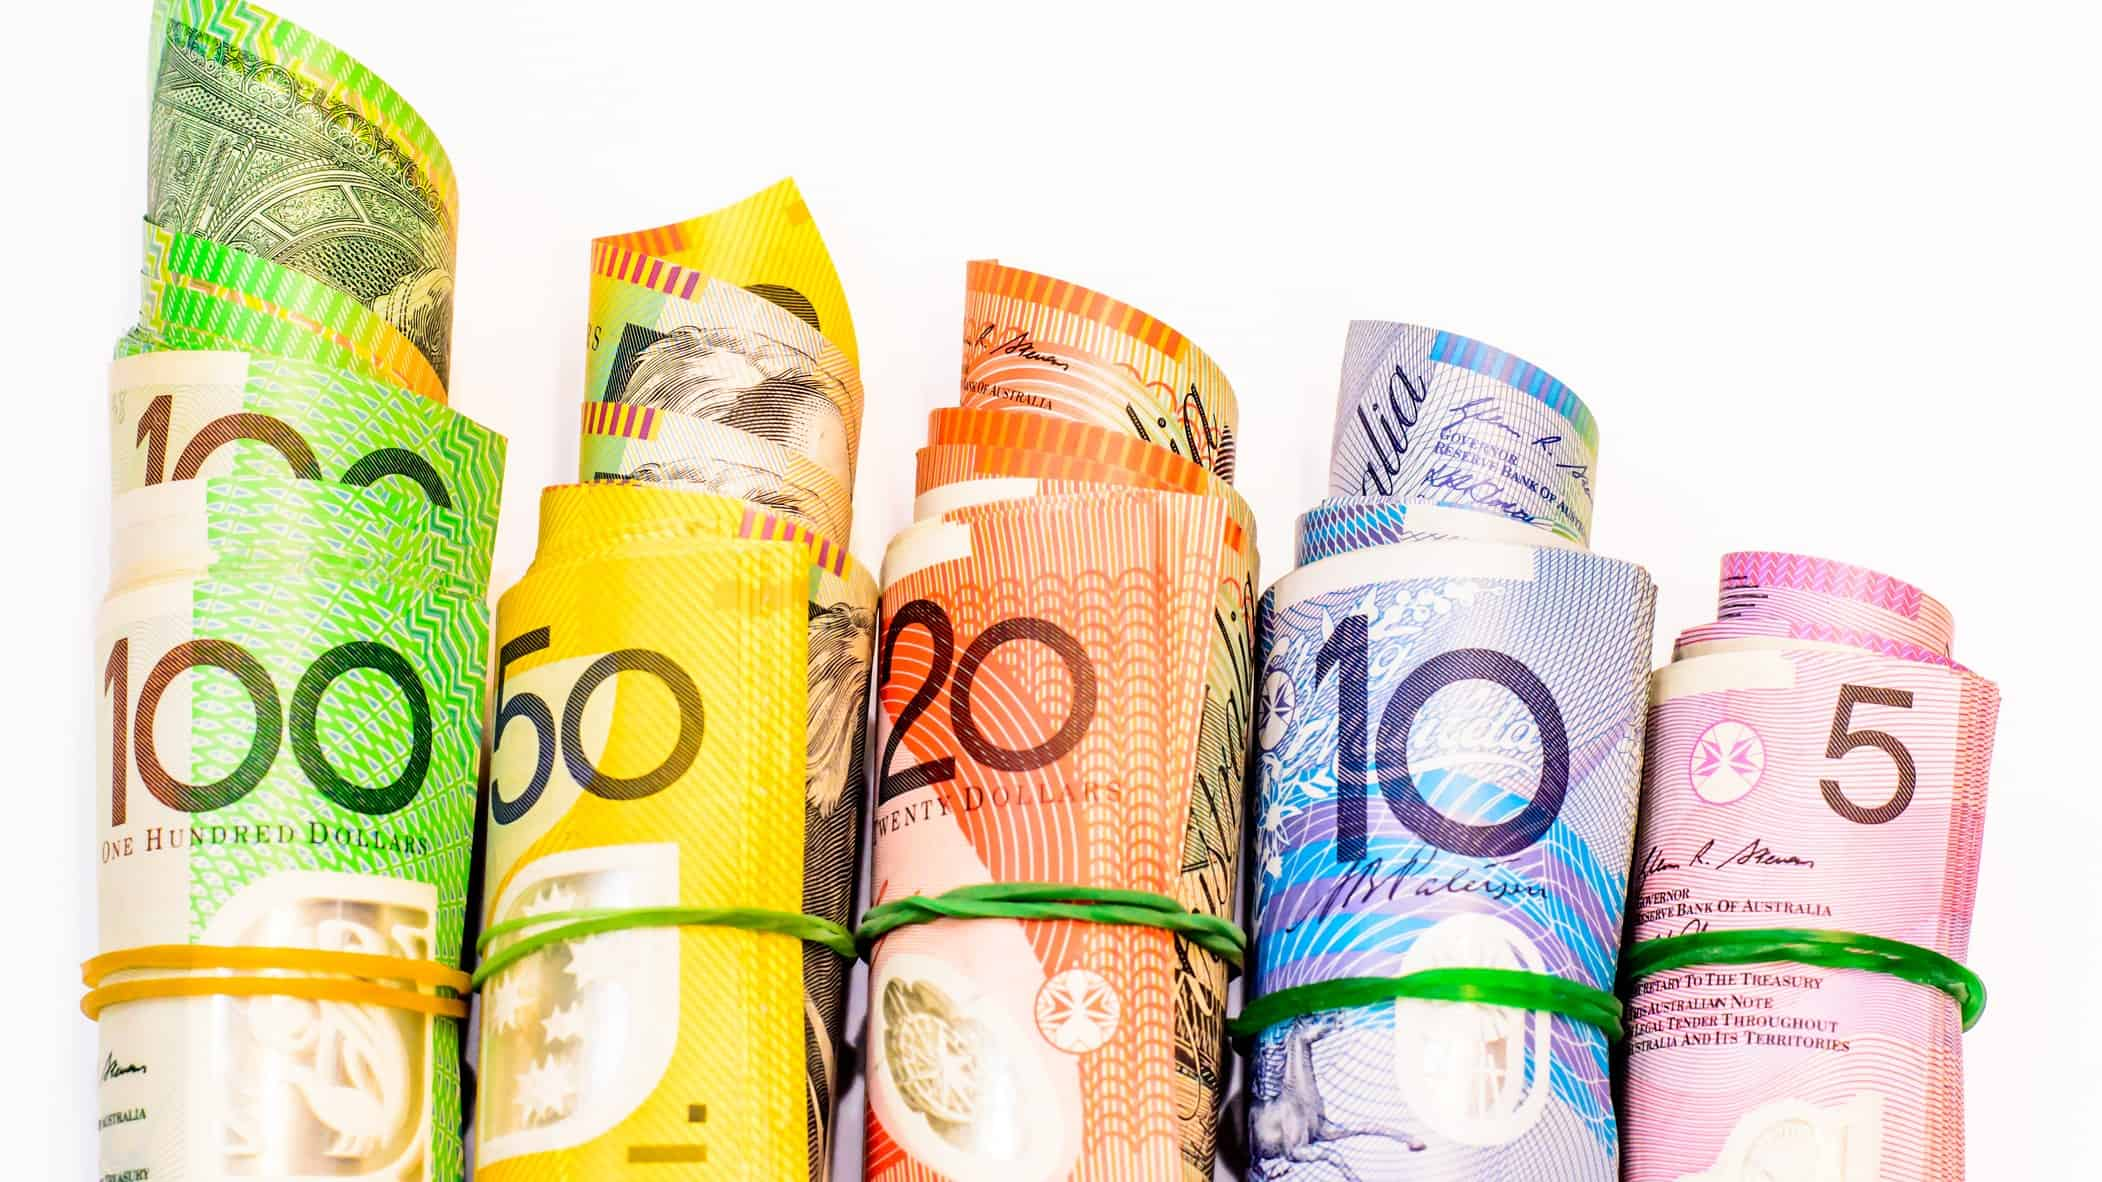 Rolled up notes of Australia dollars from $5 to $100 notes